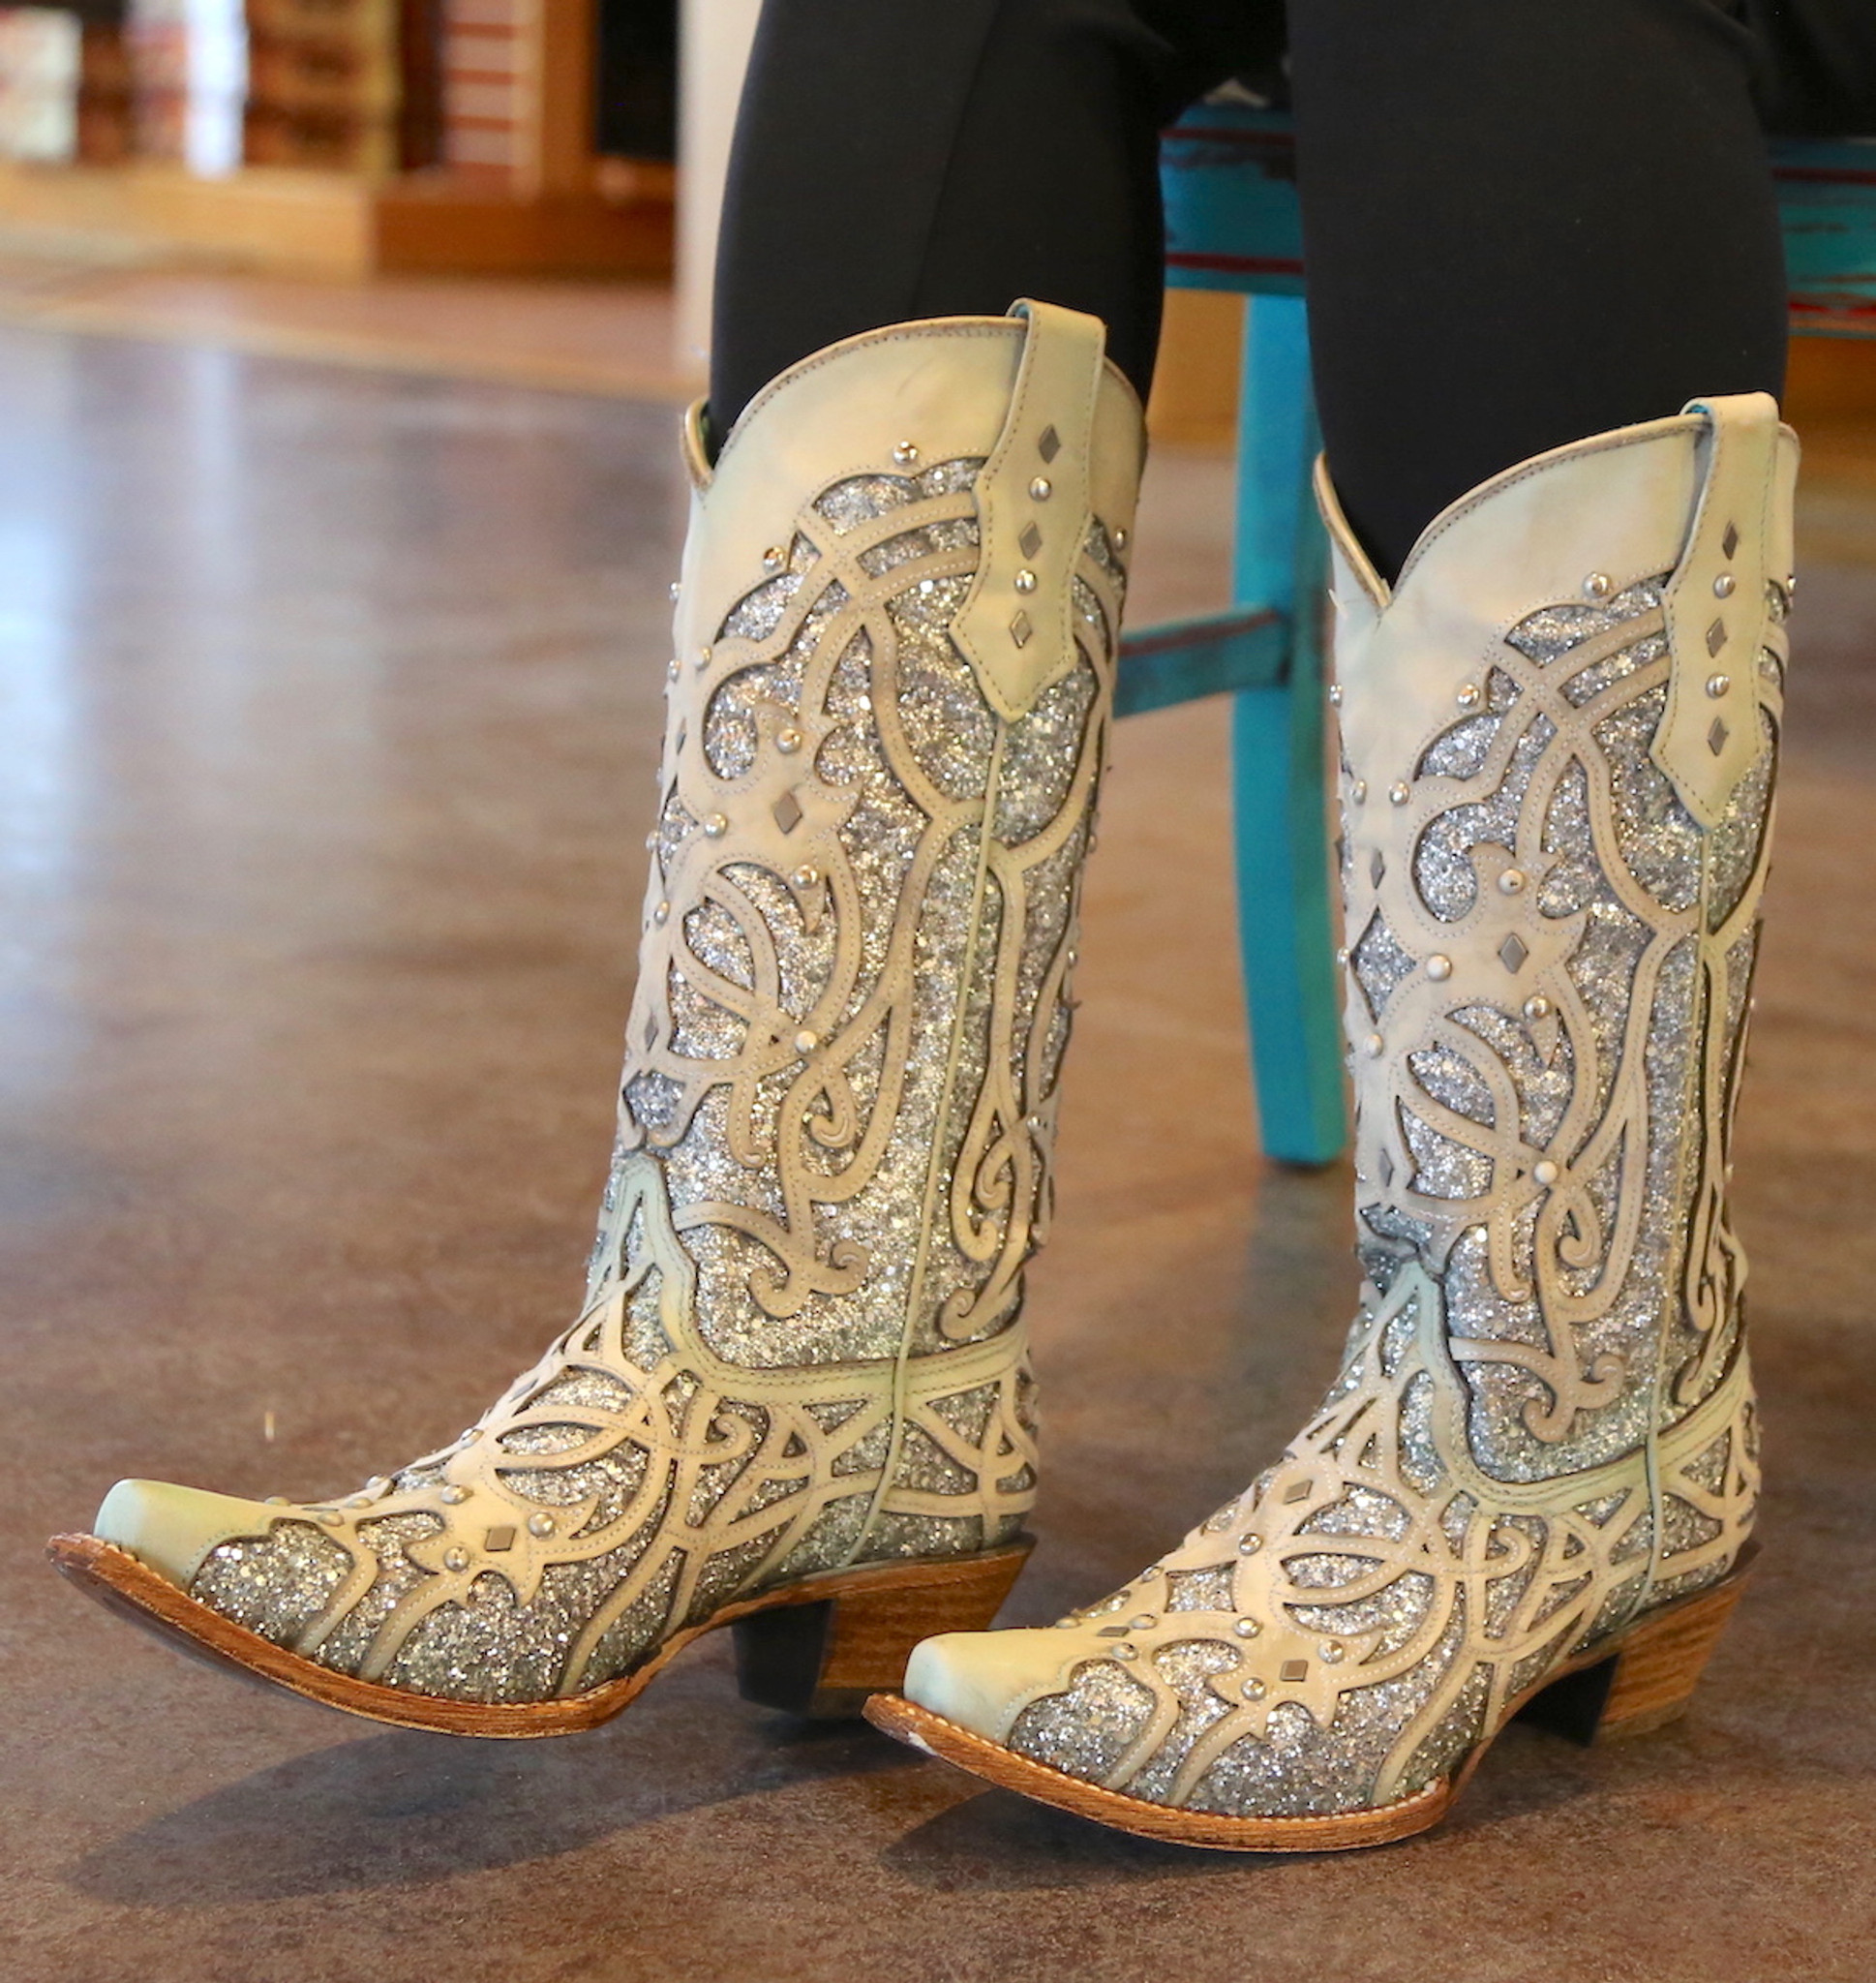 258943ad6f1 Corral white turquoise glitter chameleon boot indoor photo toe JPG  1211x1280 White sparkly cowgirl boots